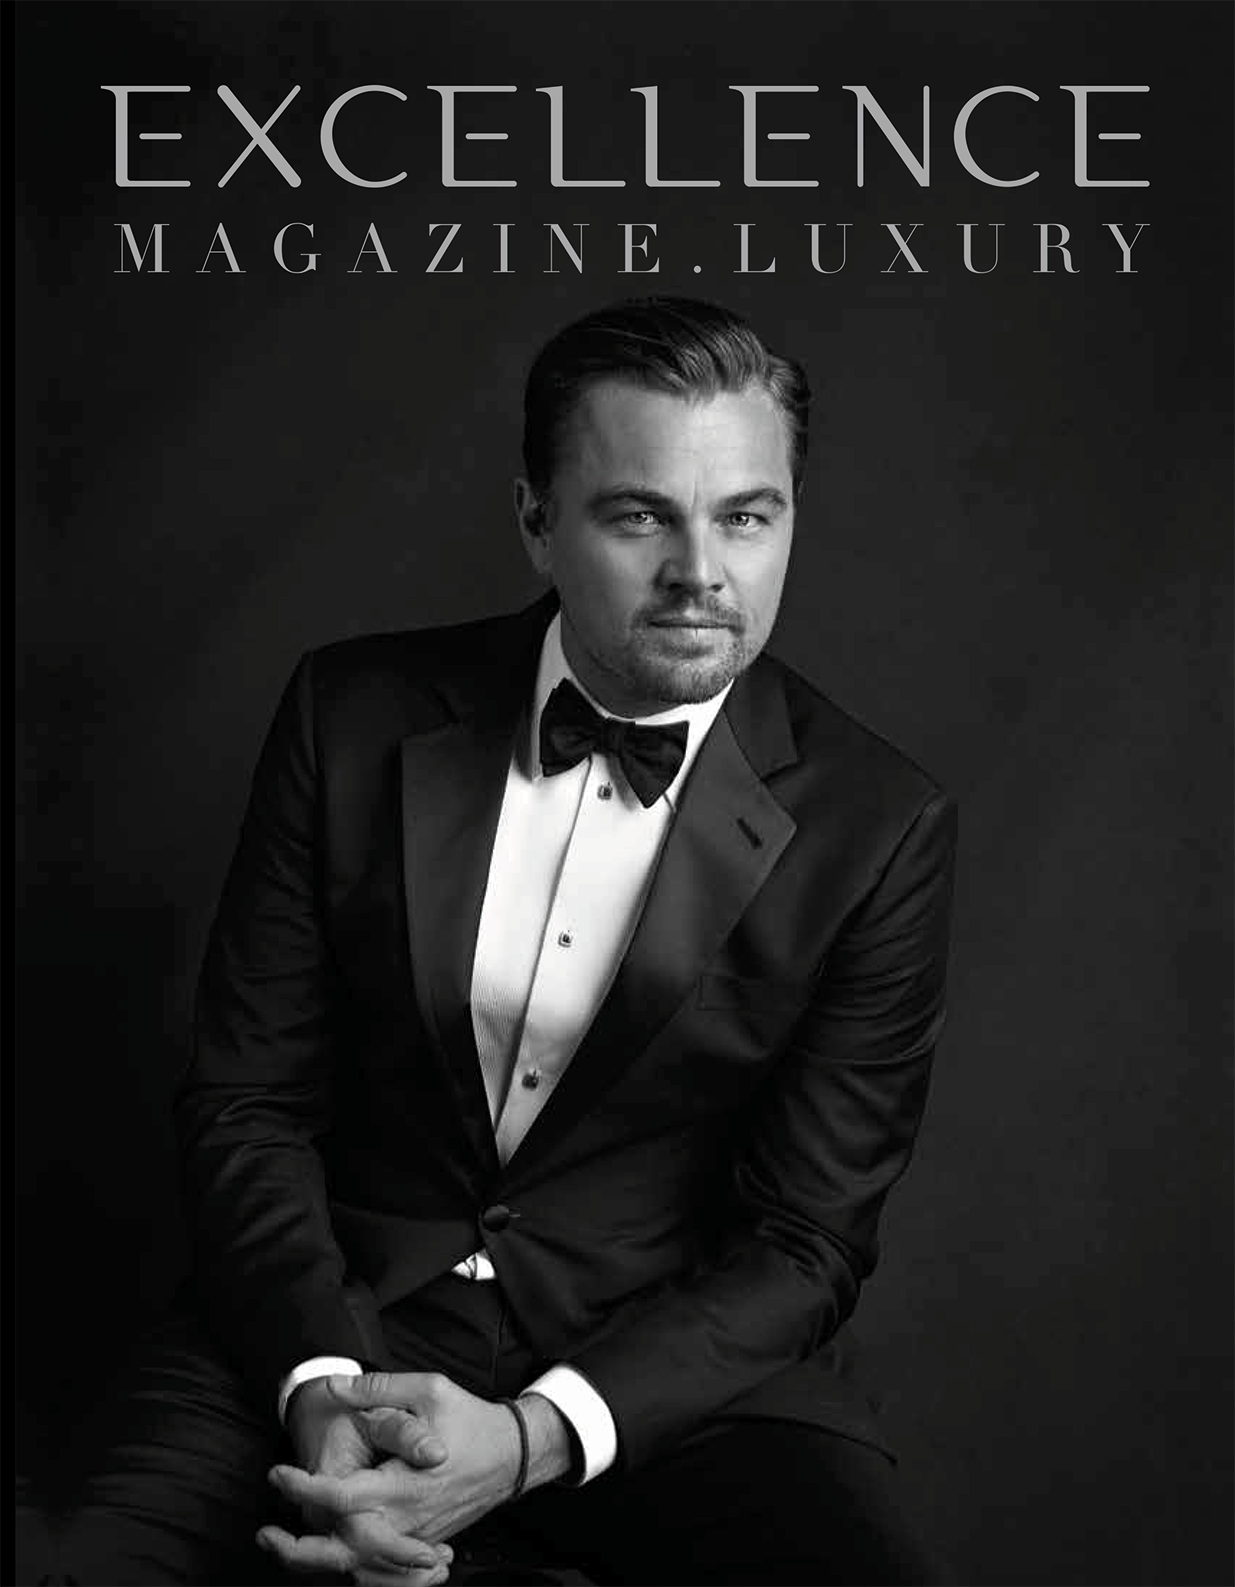 Galanthea launches its comprehensive 2017 campaign with a full spread in the luxury publication Excellence!